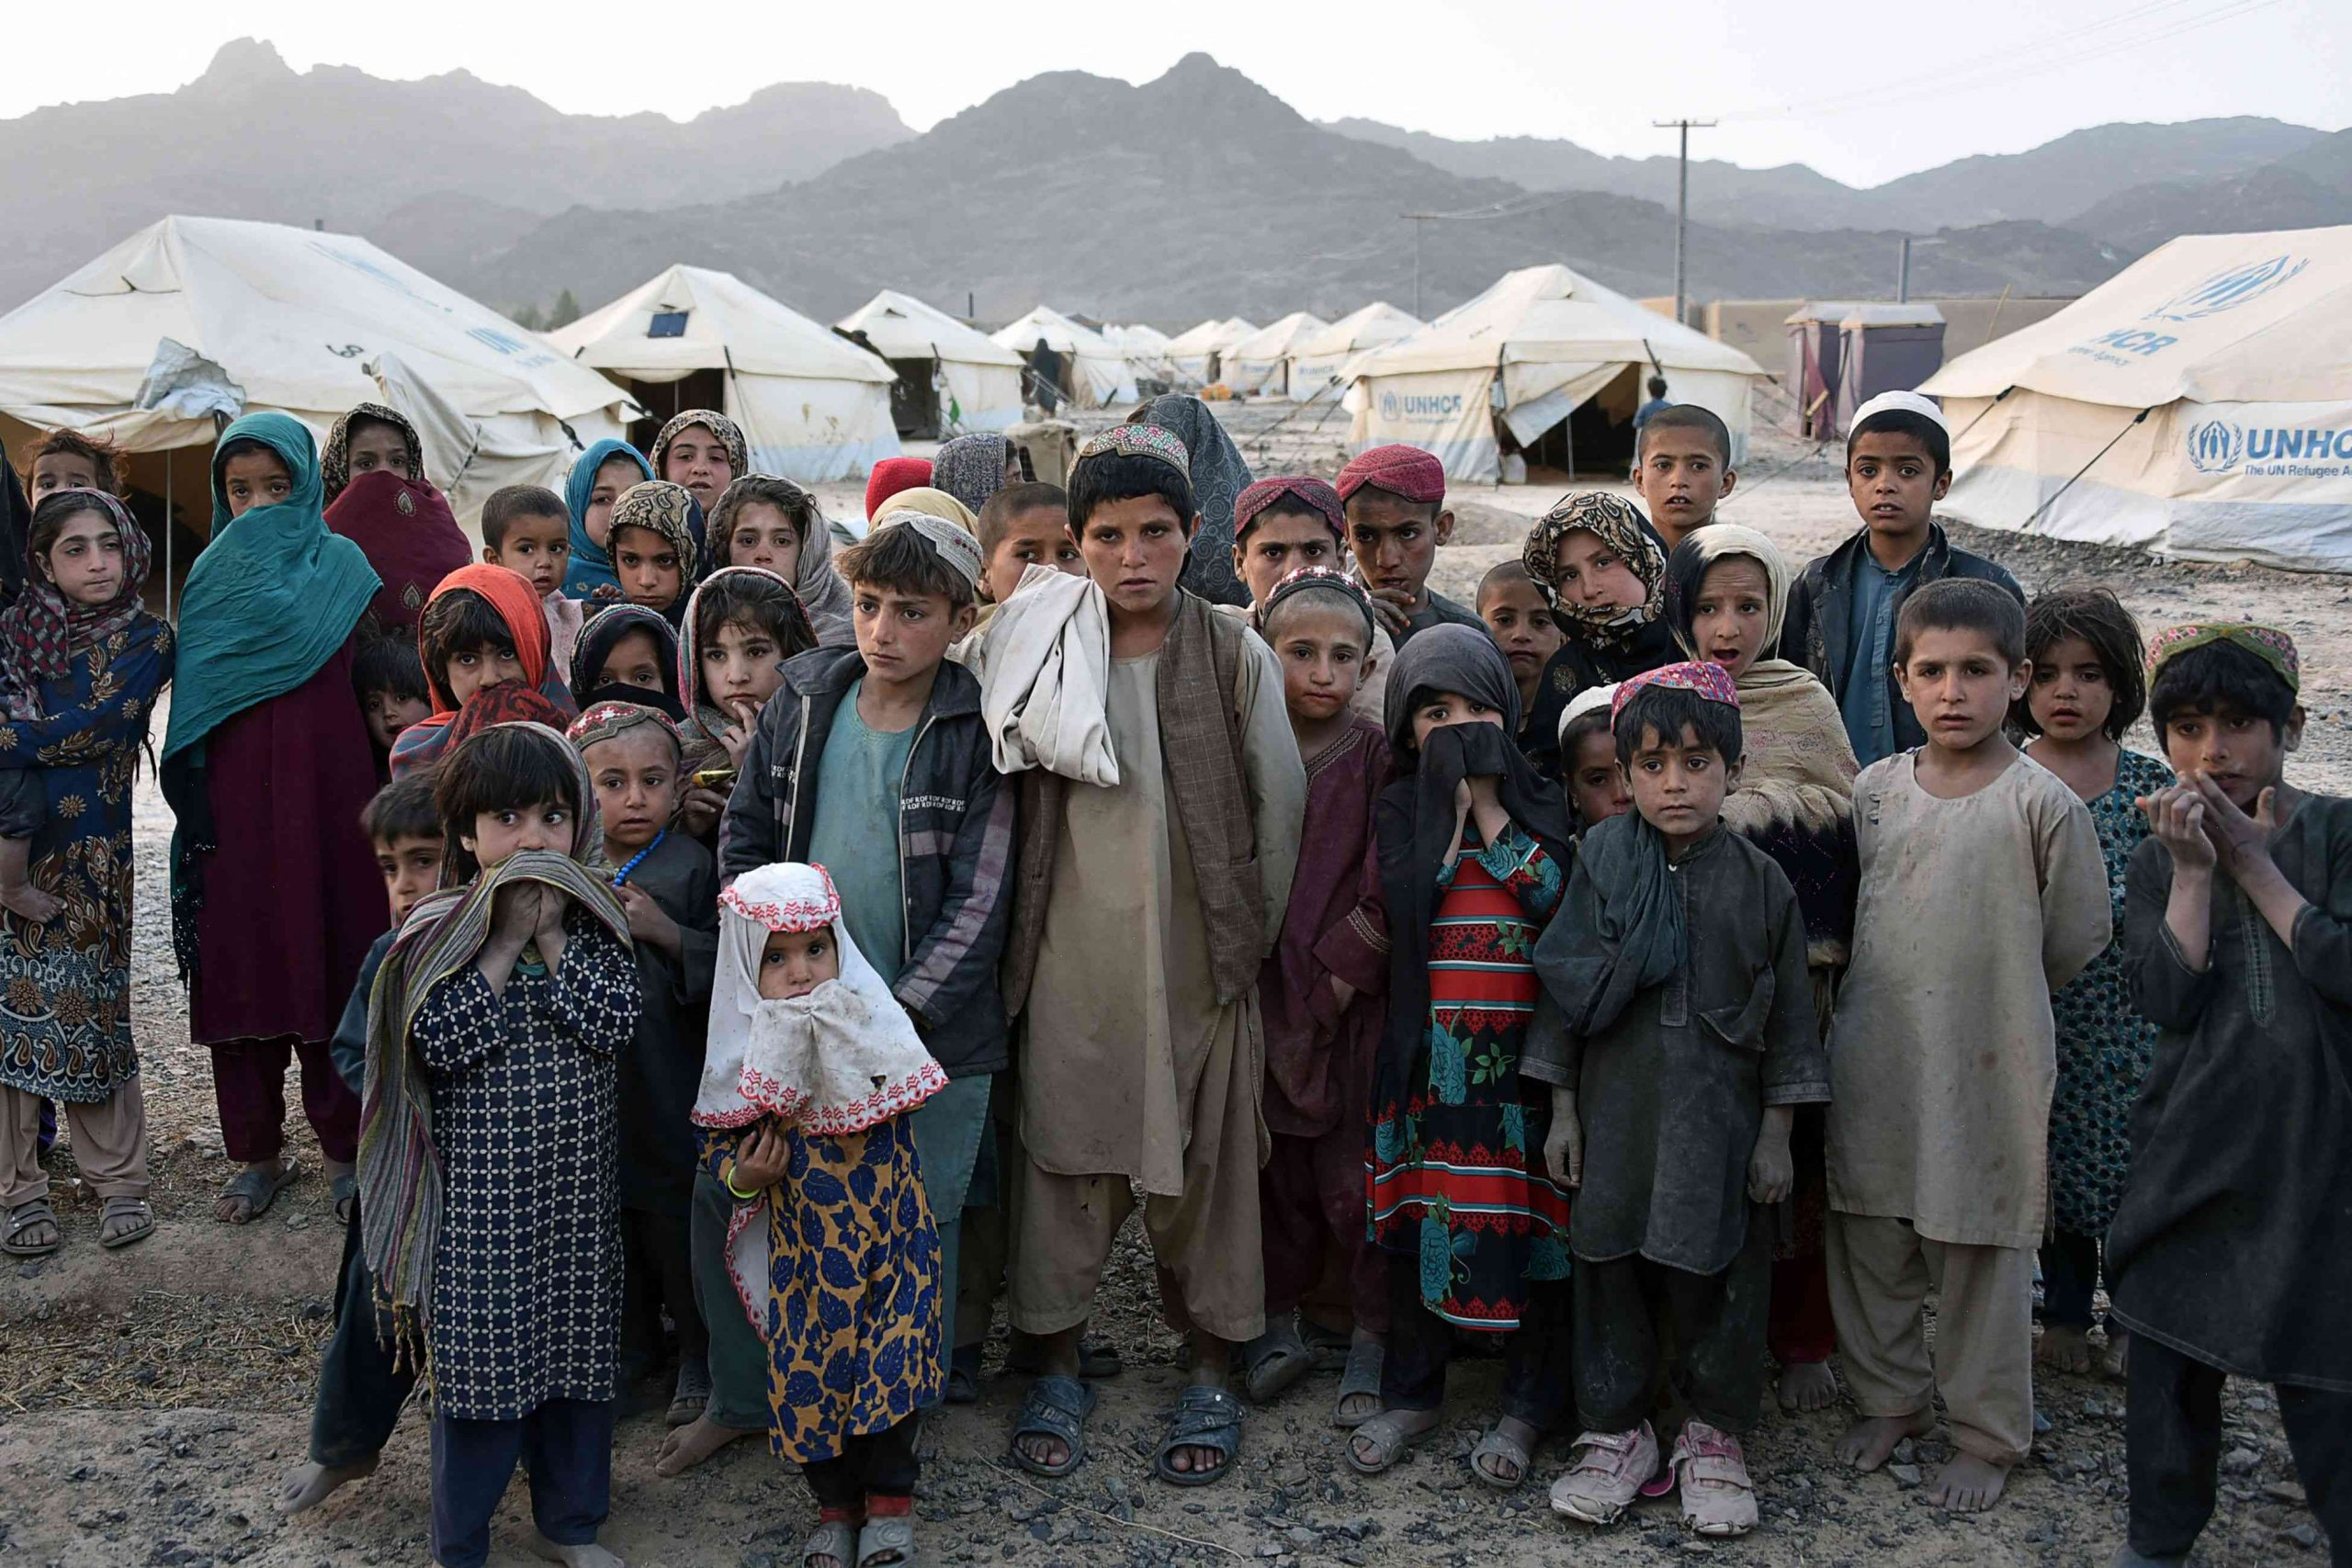 Afghan refugees hope that the Obama administration will end the longest war in U.S. history